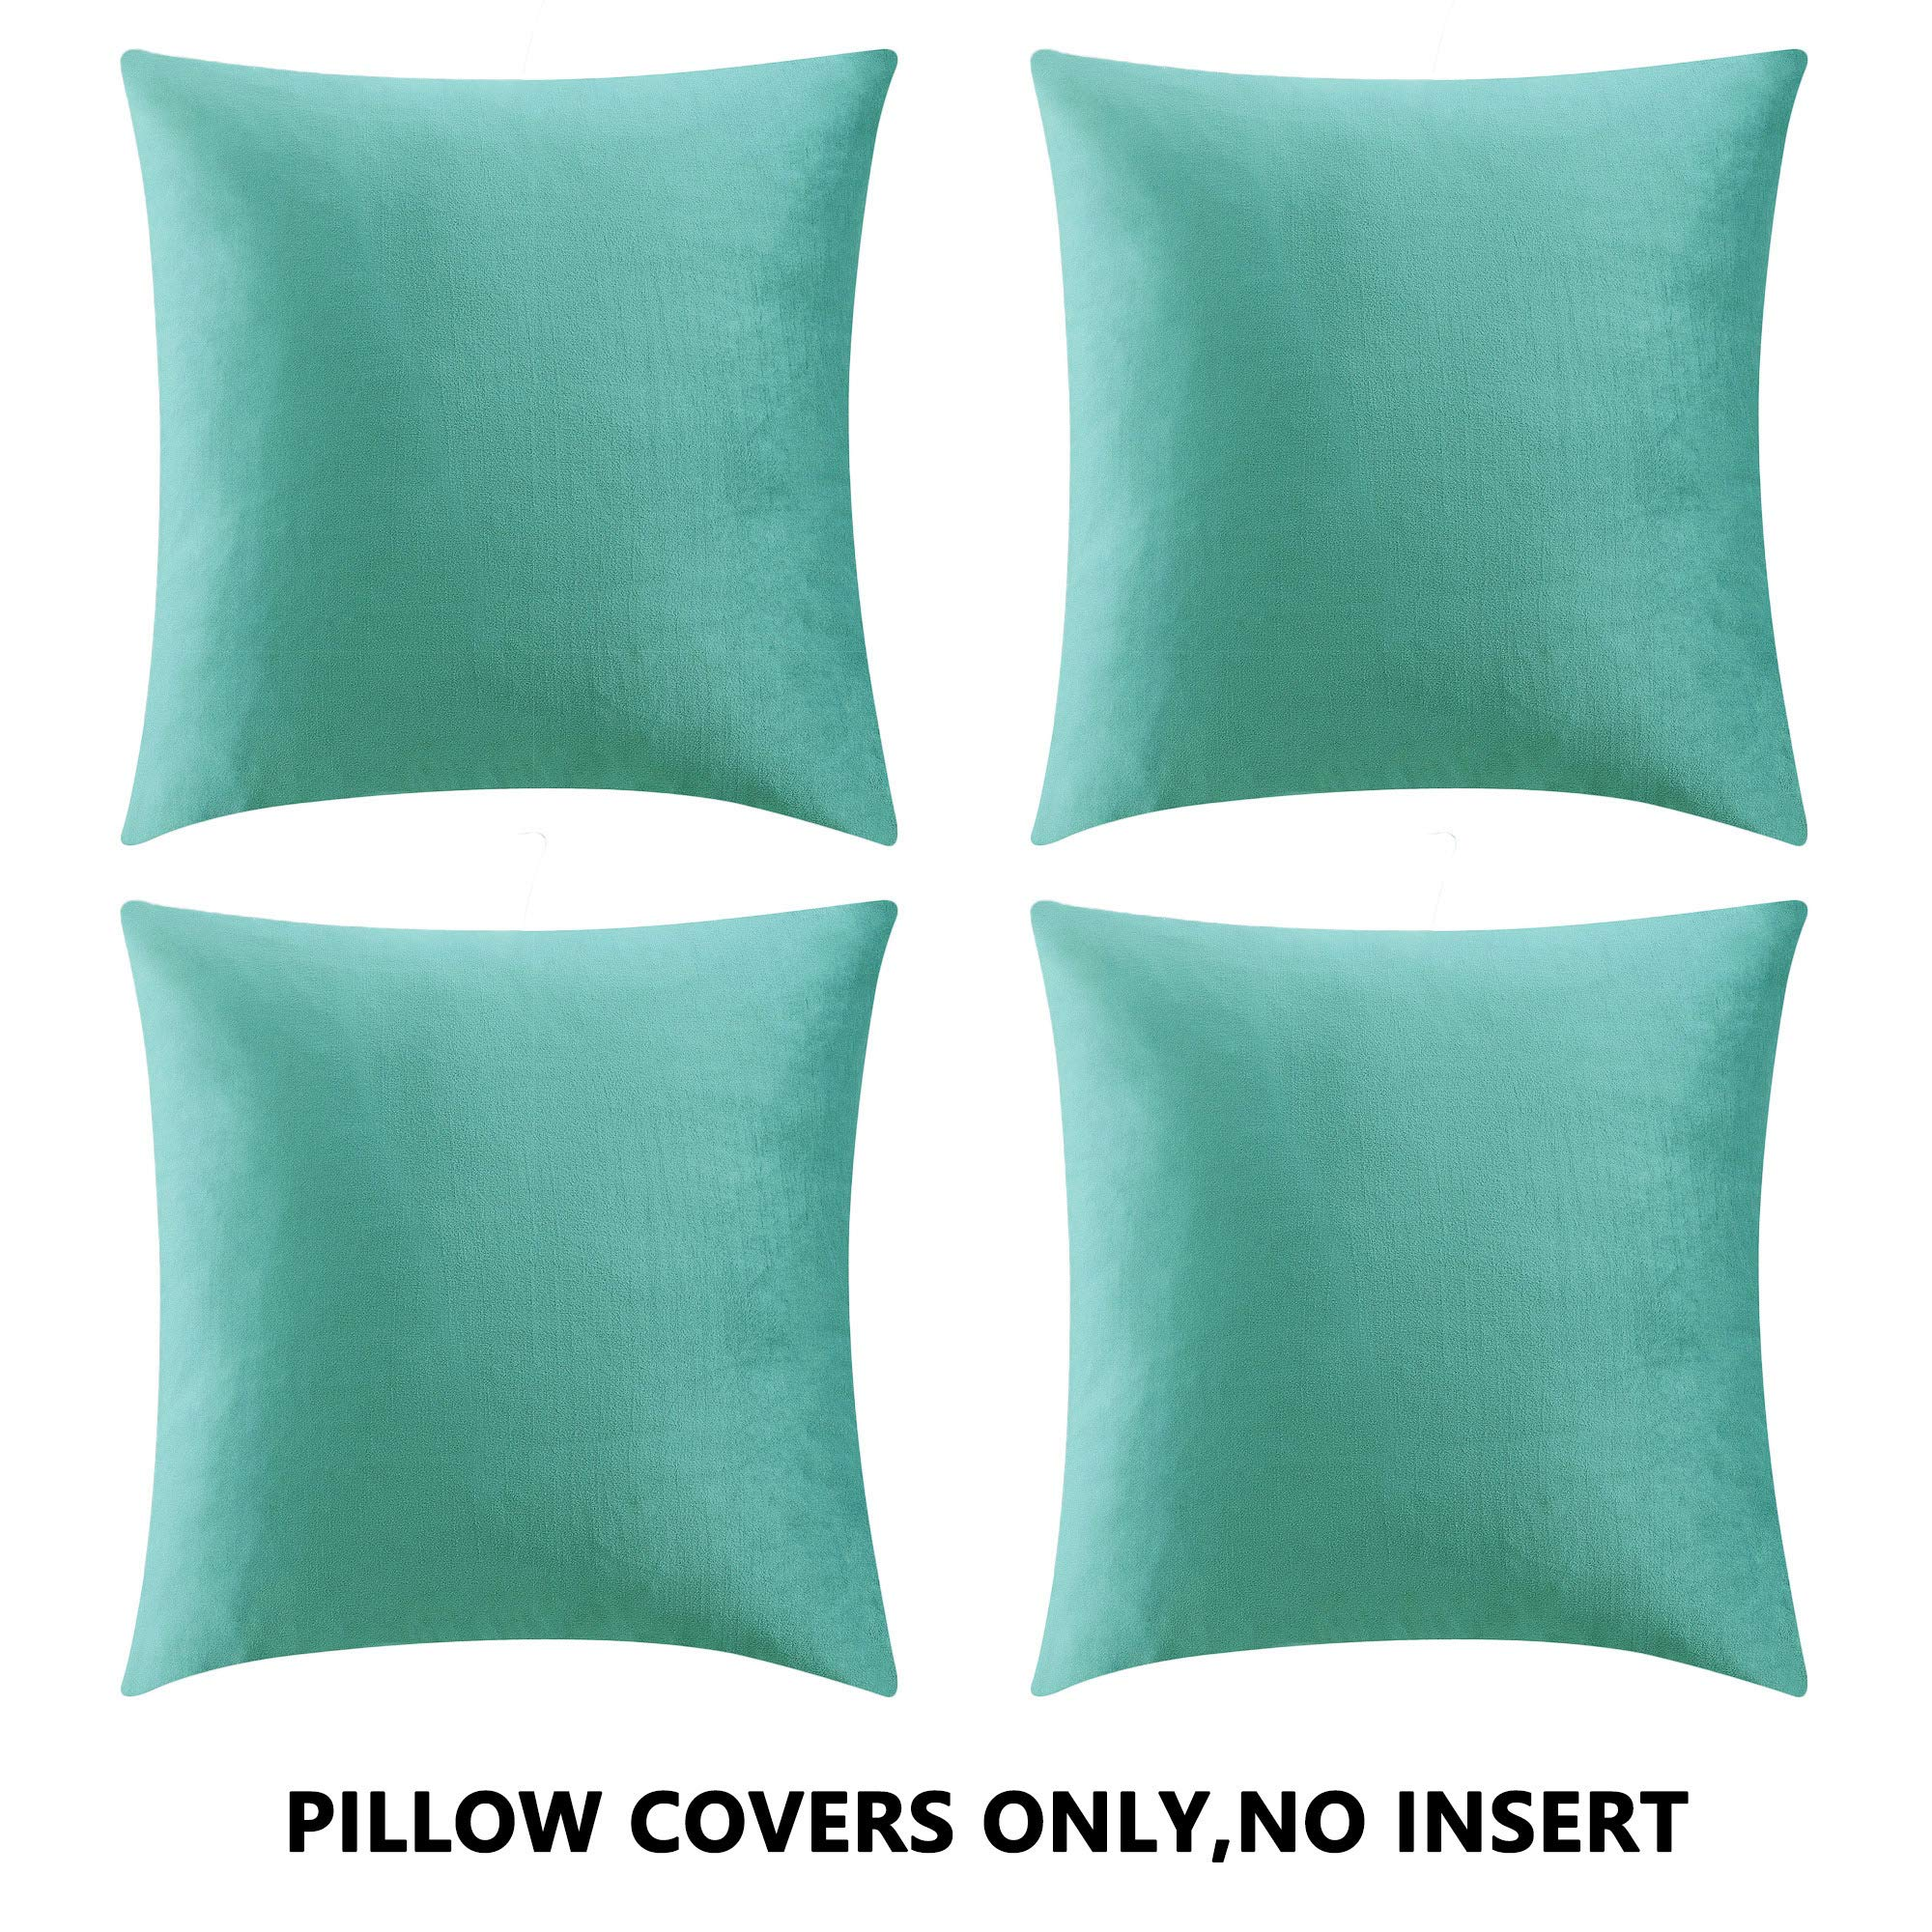 COMFORTLAND Throw Pillow Cases 20x20 Teal Green: 4 Pack Cozy Soft Velvet Square New Year/Christmas Decorative Pillow Covers for Farmhouse Sofa Couch Bed Chair Home Decor Decorations